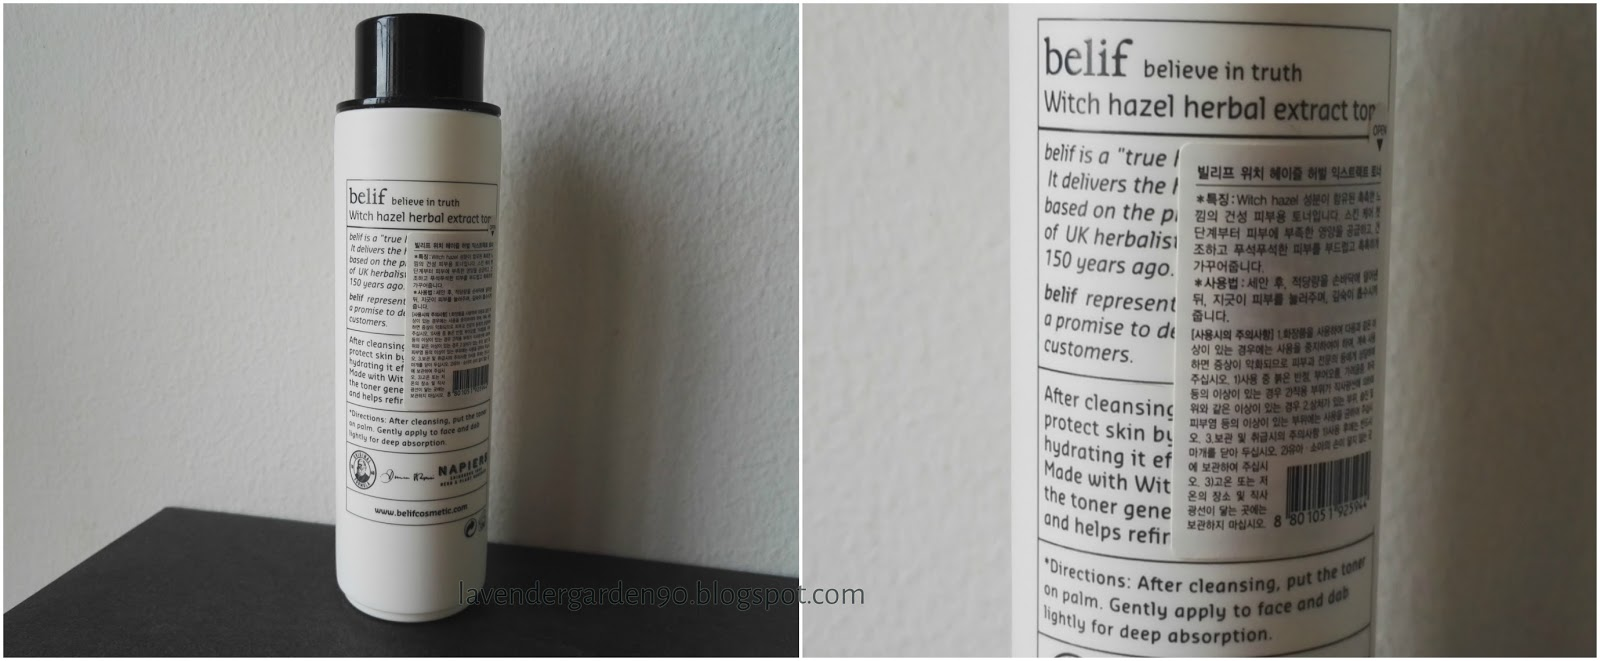 Witch Hazel Herbal Extract Toner by belif #17